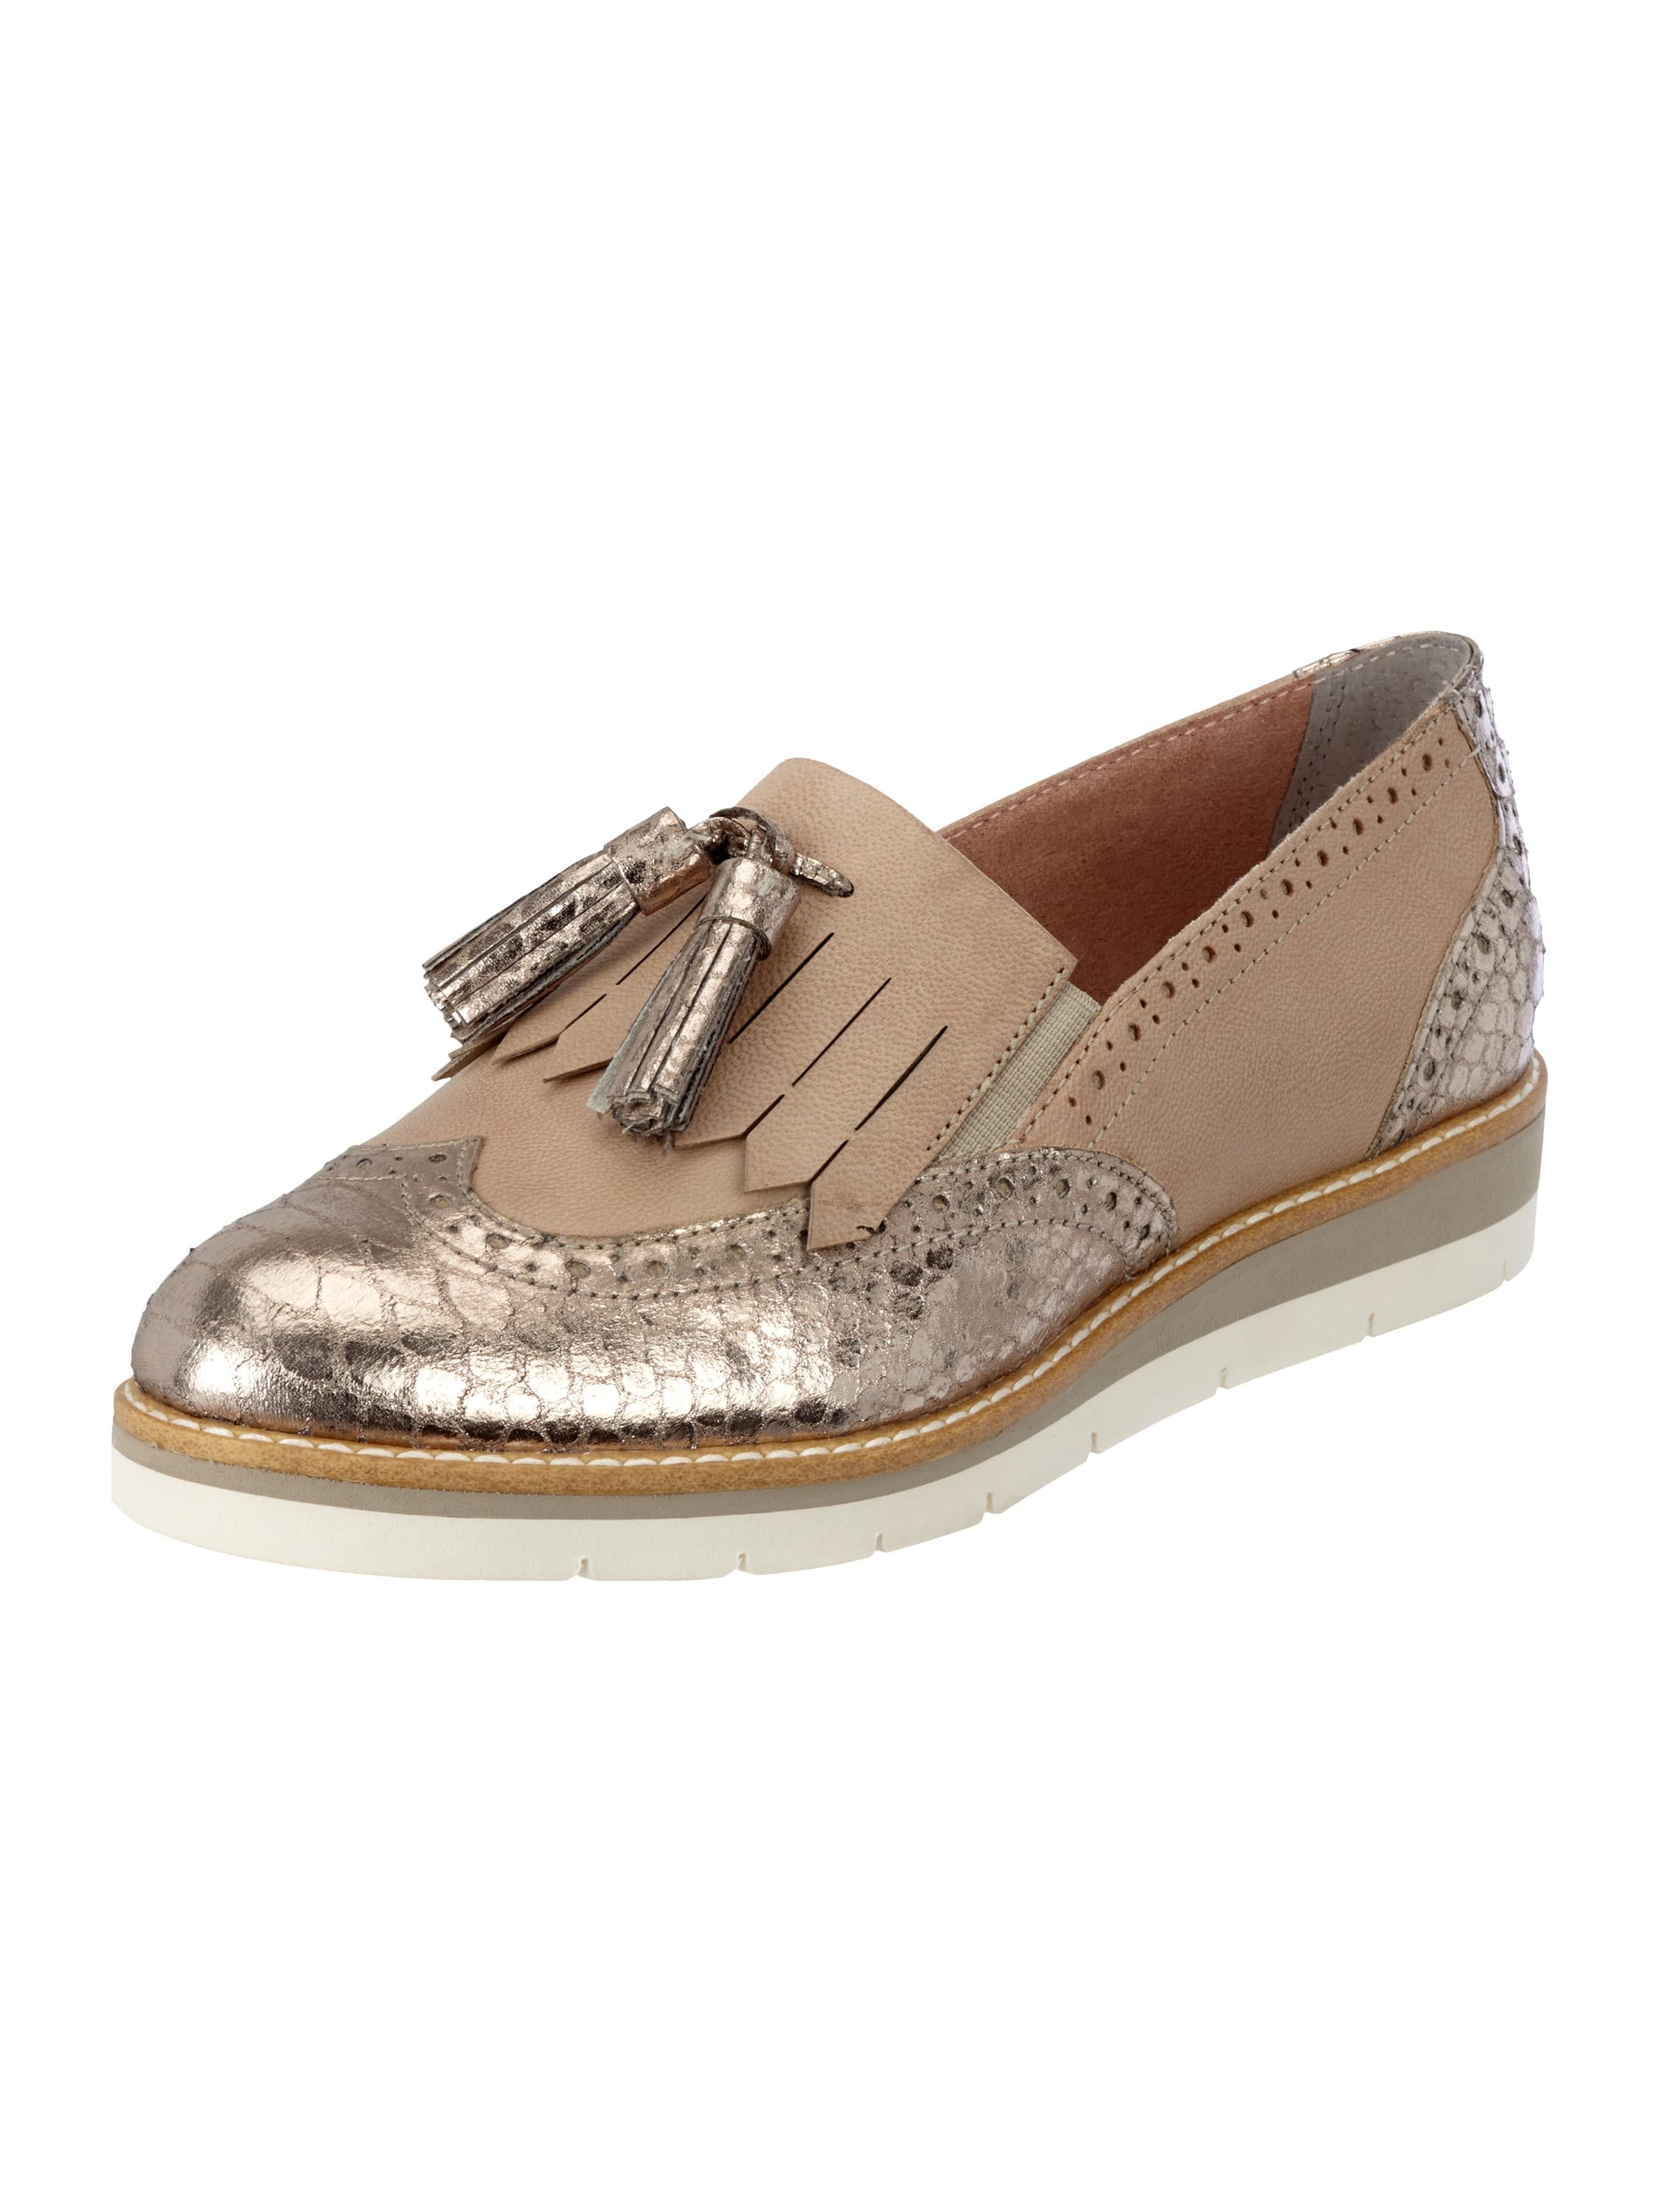 tamaris tassel loafer mit metallic details in ros online kaufen 9634208 p c online shop. Black Bedroom Furniture Sets. Home Design Ideas